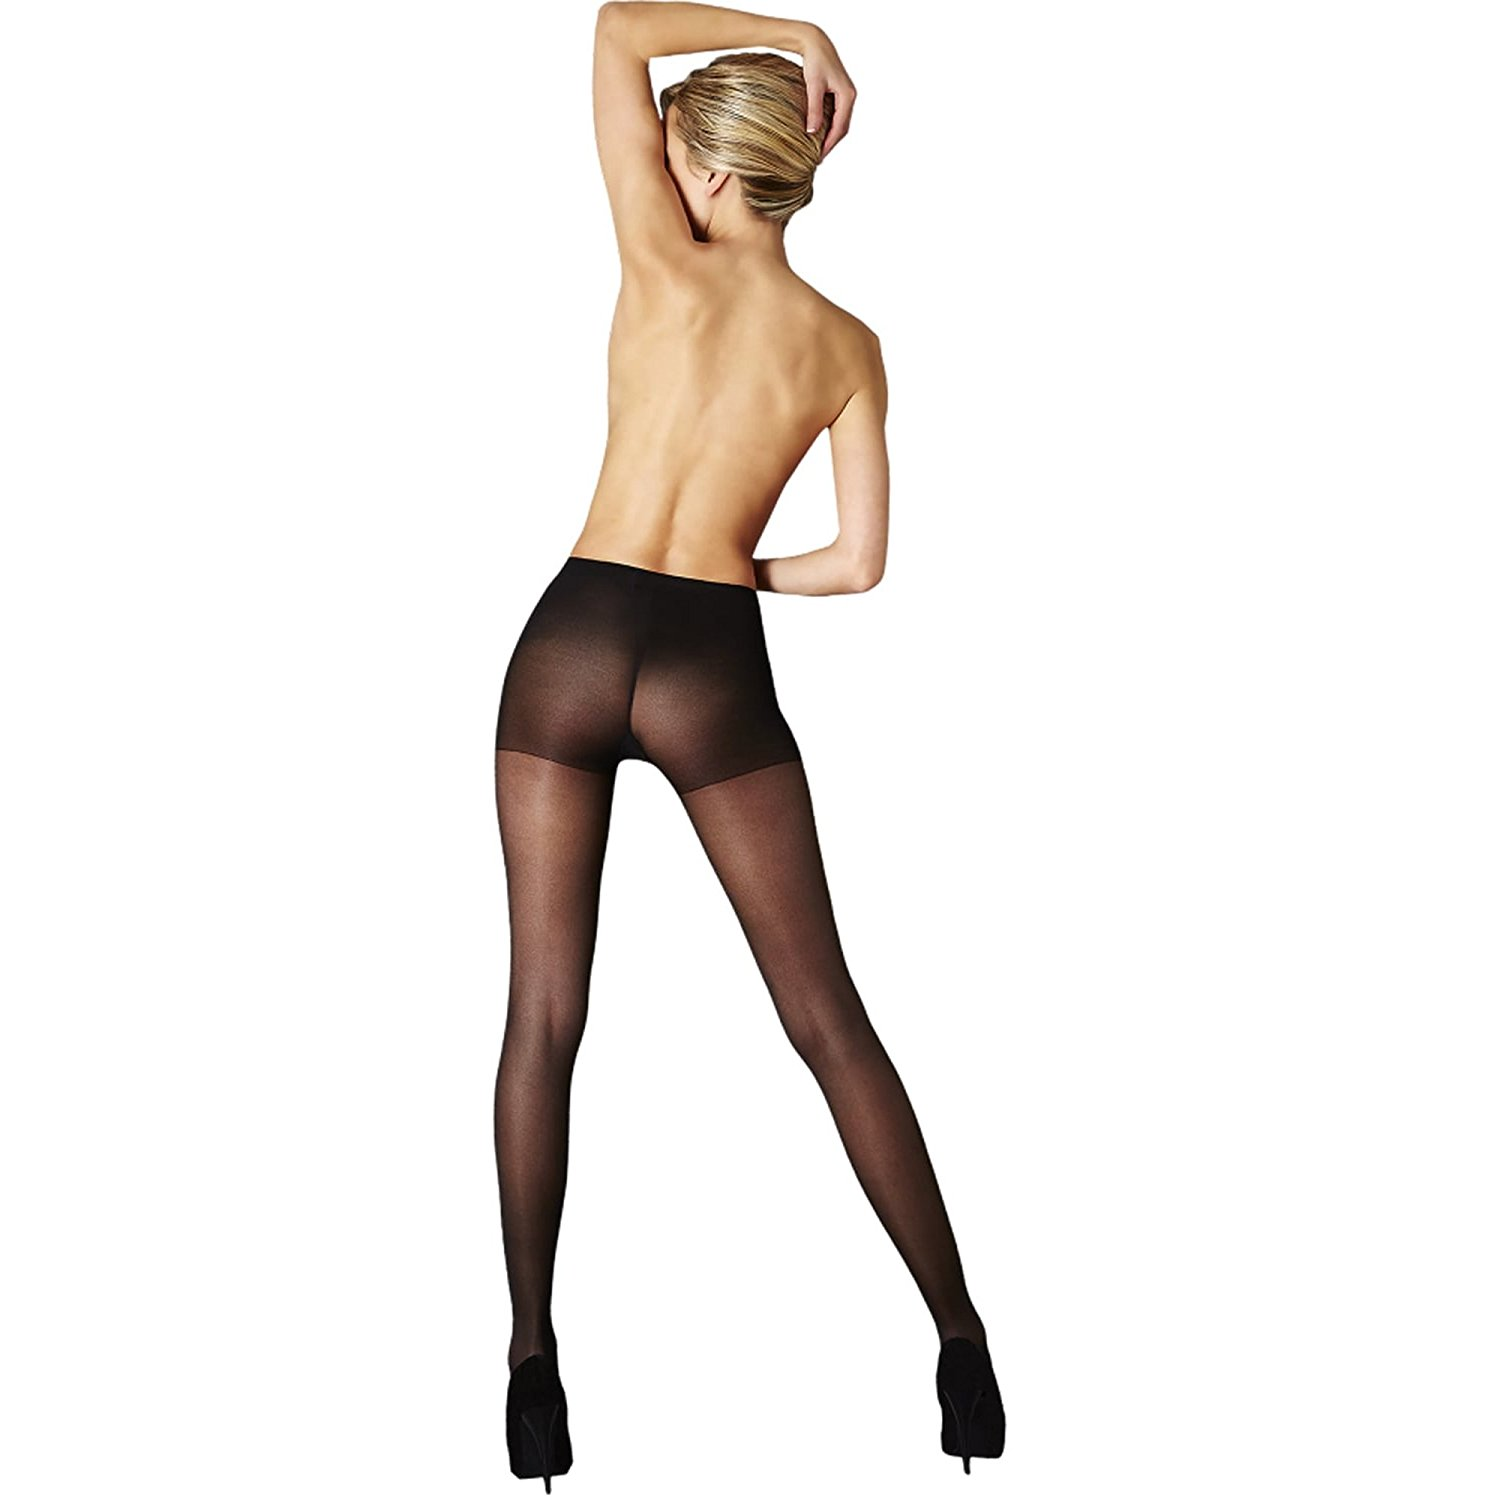 88664c2e6 Get Quotations · Pretty Legs Pretty Plus Xceptionelle Luxury 20 Denier  Tights with Lycra (2 Pack)